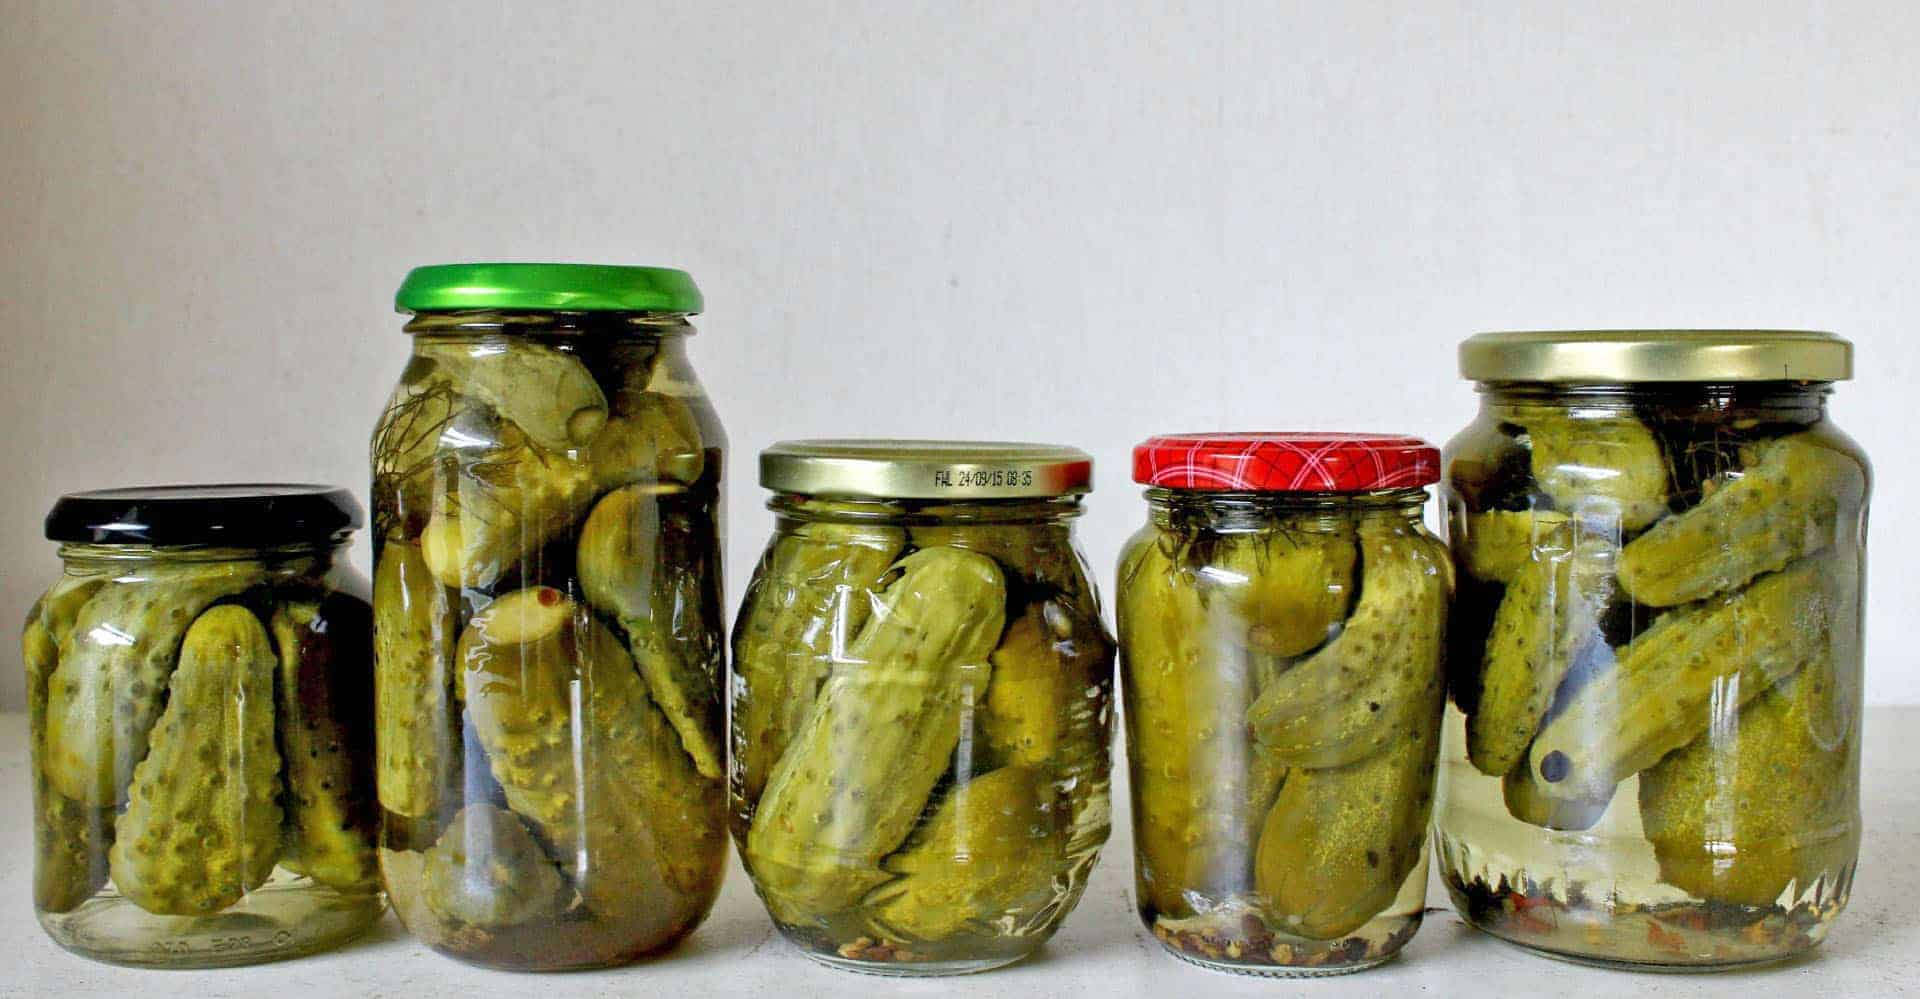 Homemade crunchy, tangy bottled gherkins